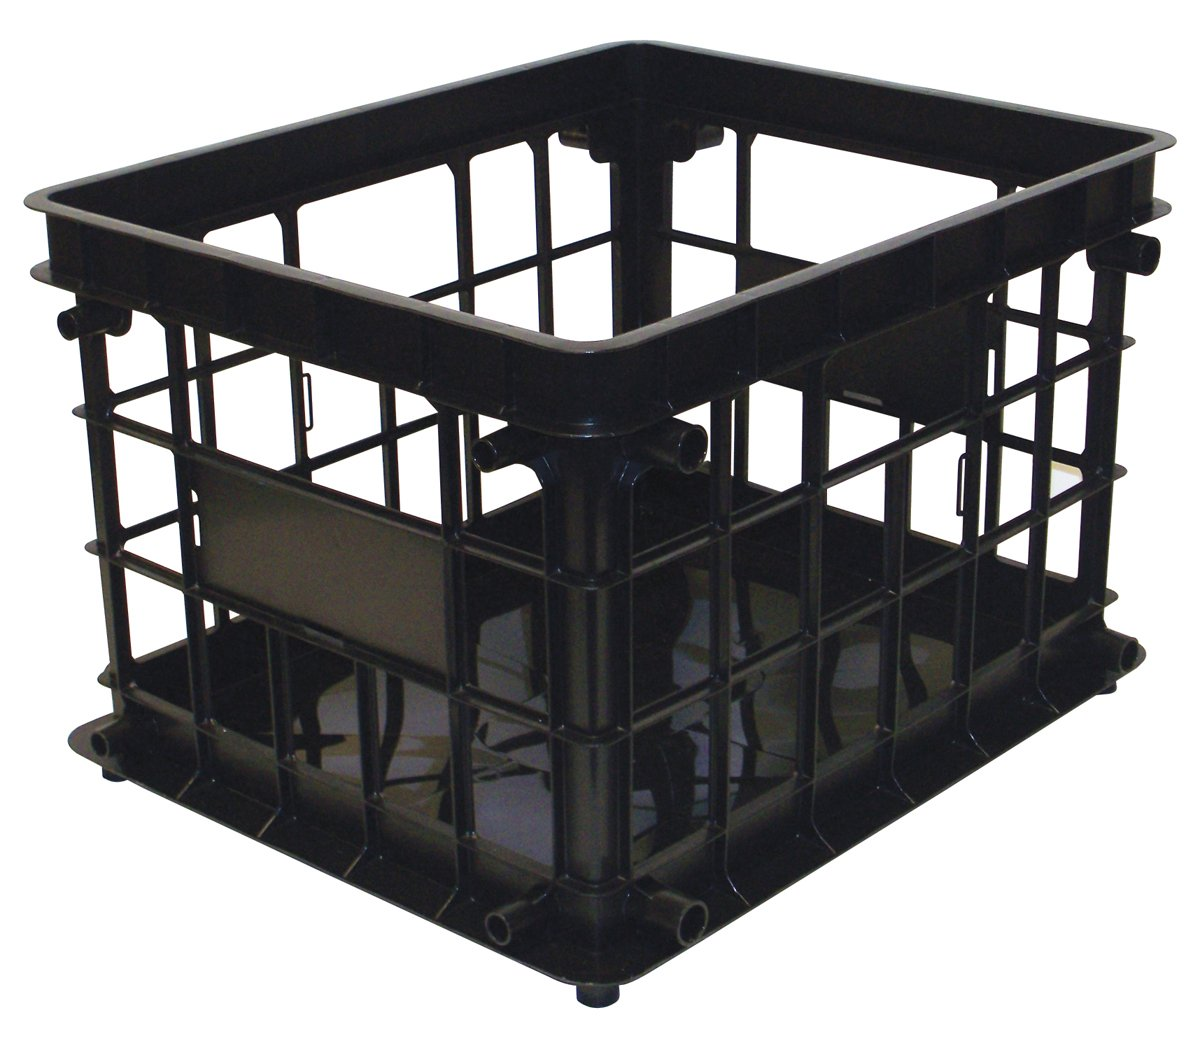 United Solutions-Organize Your Home CR0093 Black Plastic Inter-Locking Modular Crate -Plastic Modular Crate in Black Snaps Together for Space Saving Storage/Organization in Home, Office or Dorm Room